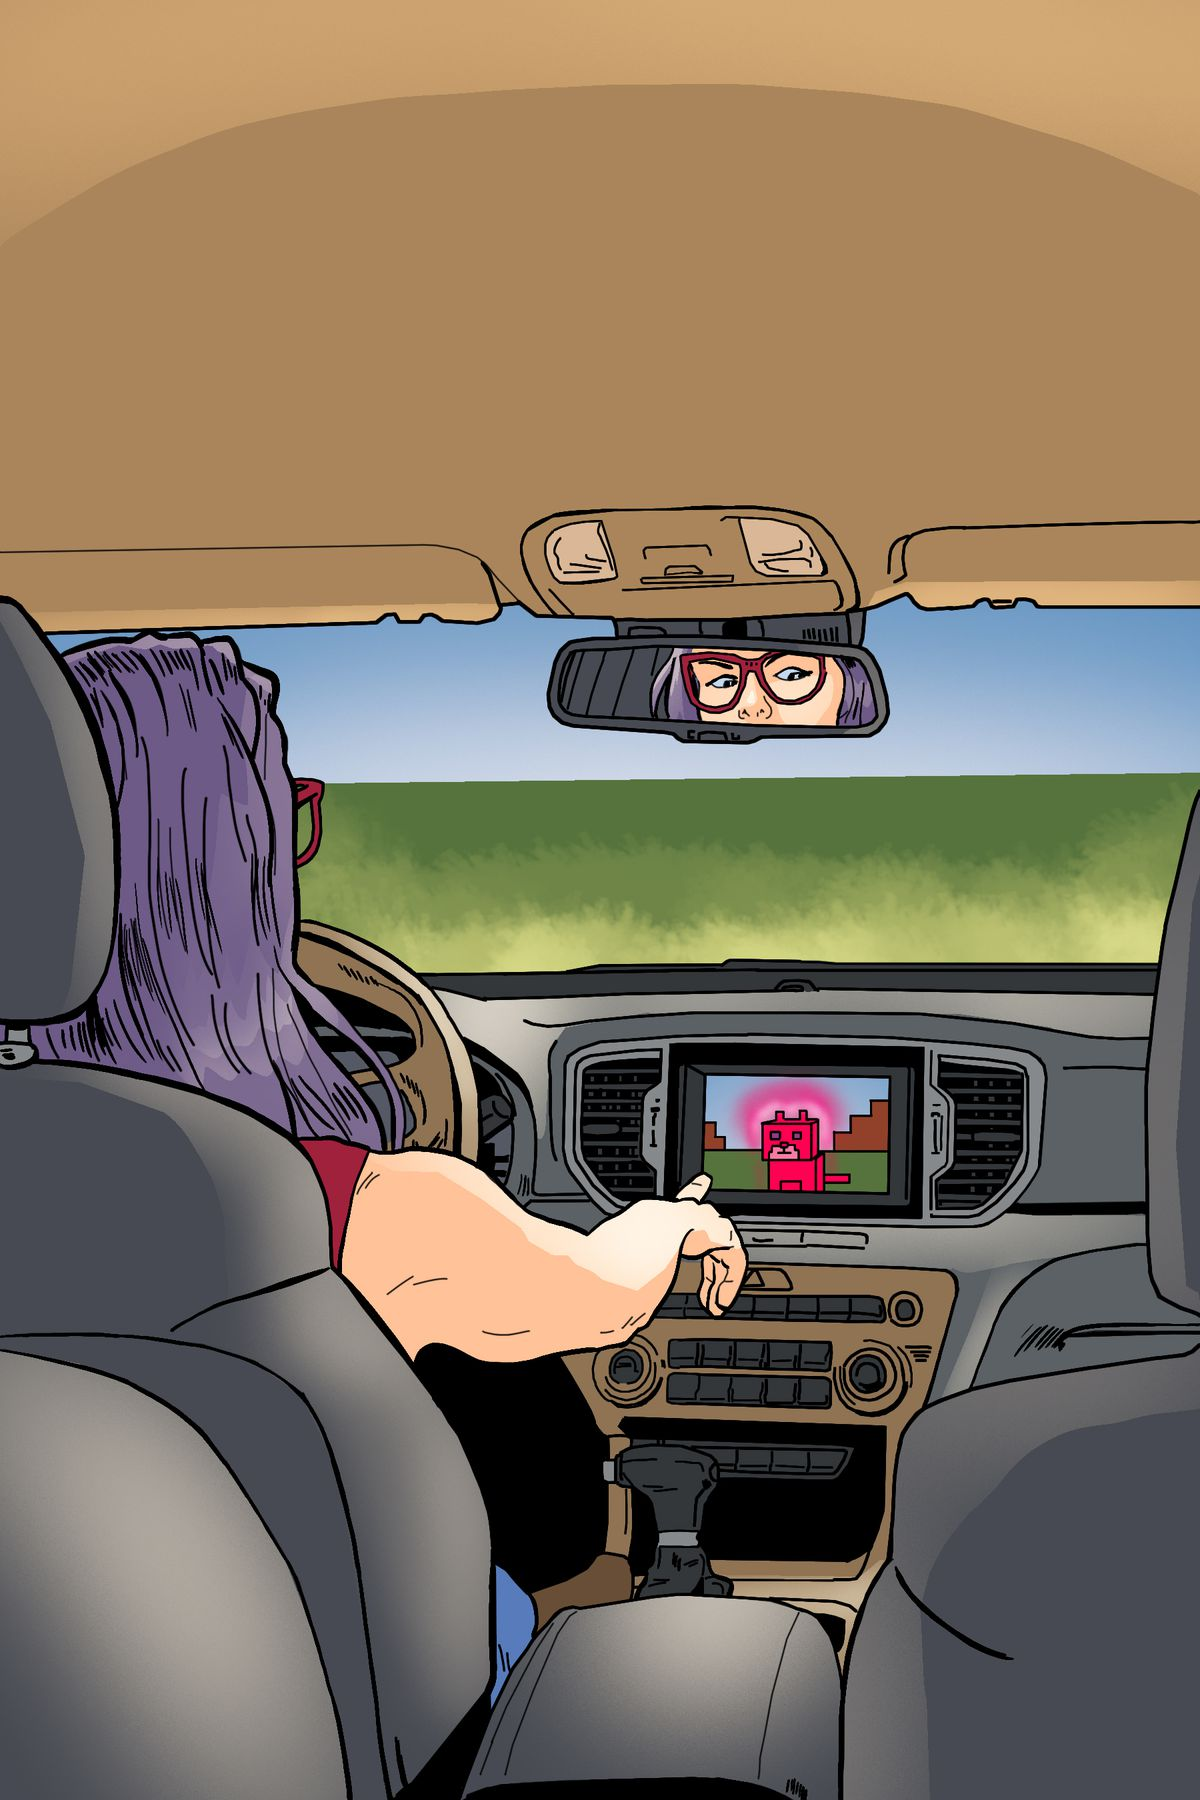 Inside a parked car, a gamer taps the touchscreen on the center console, interacting with a game featuring a blocky pink cat.